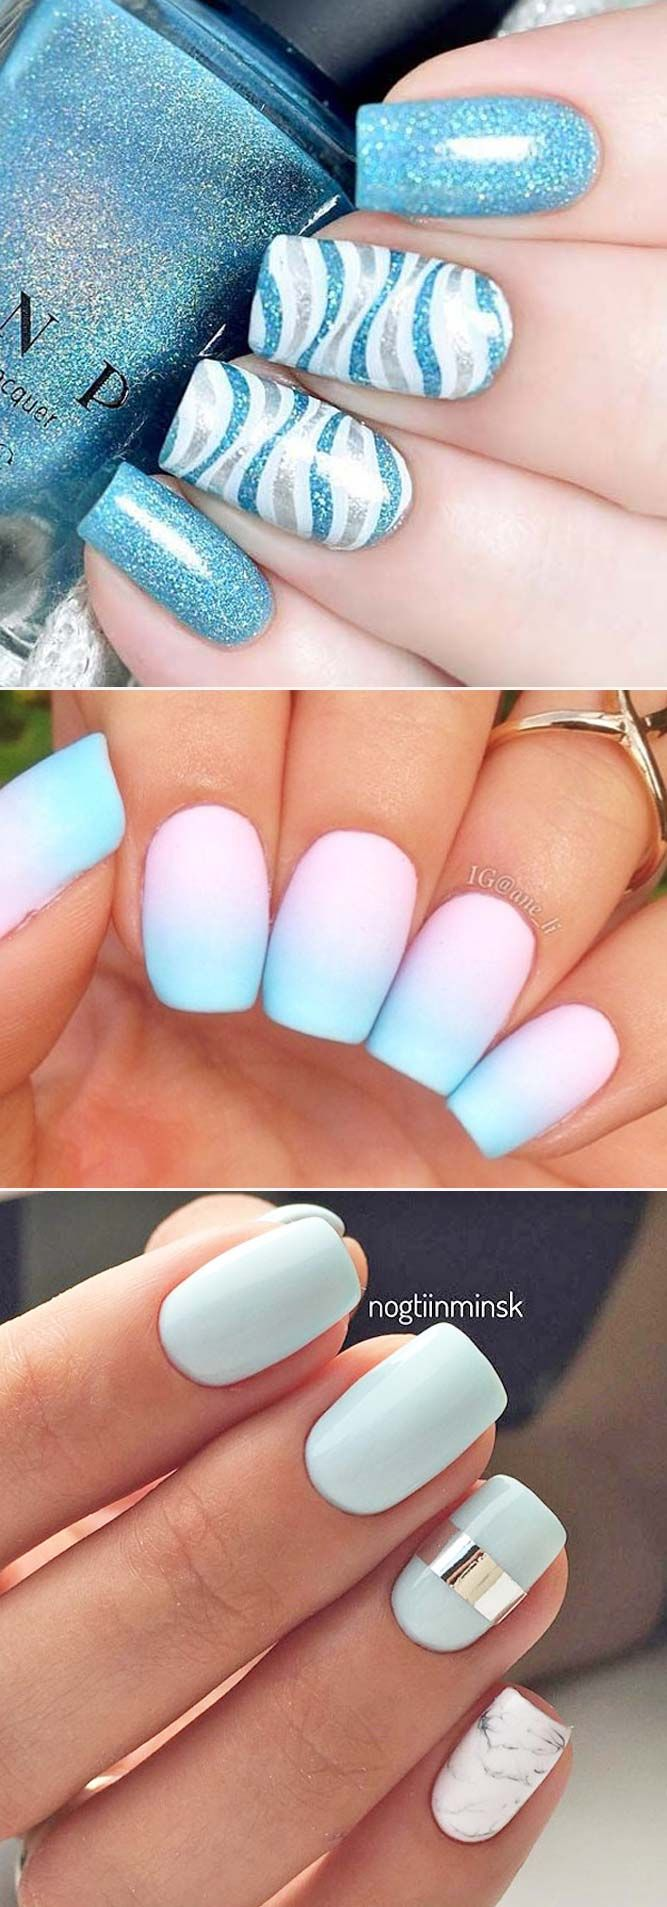 best Nail designs images on Pinterest